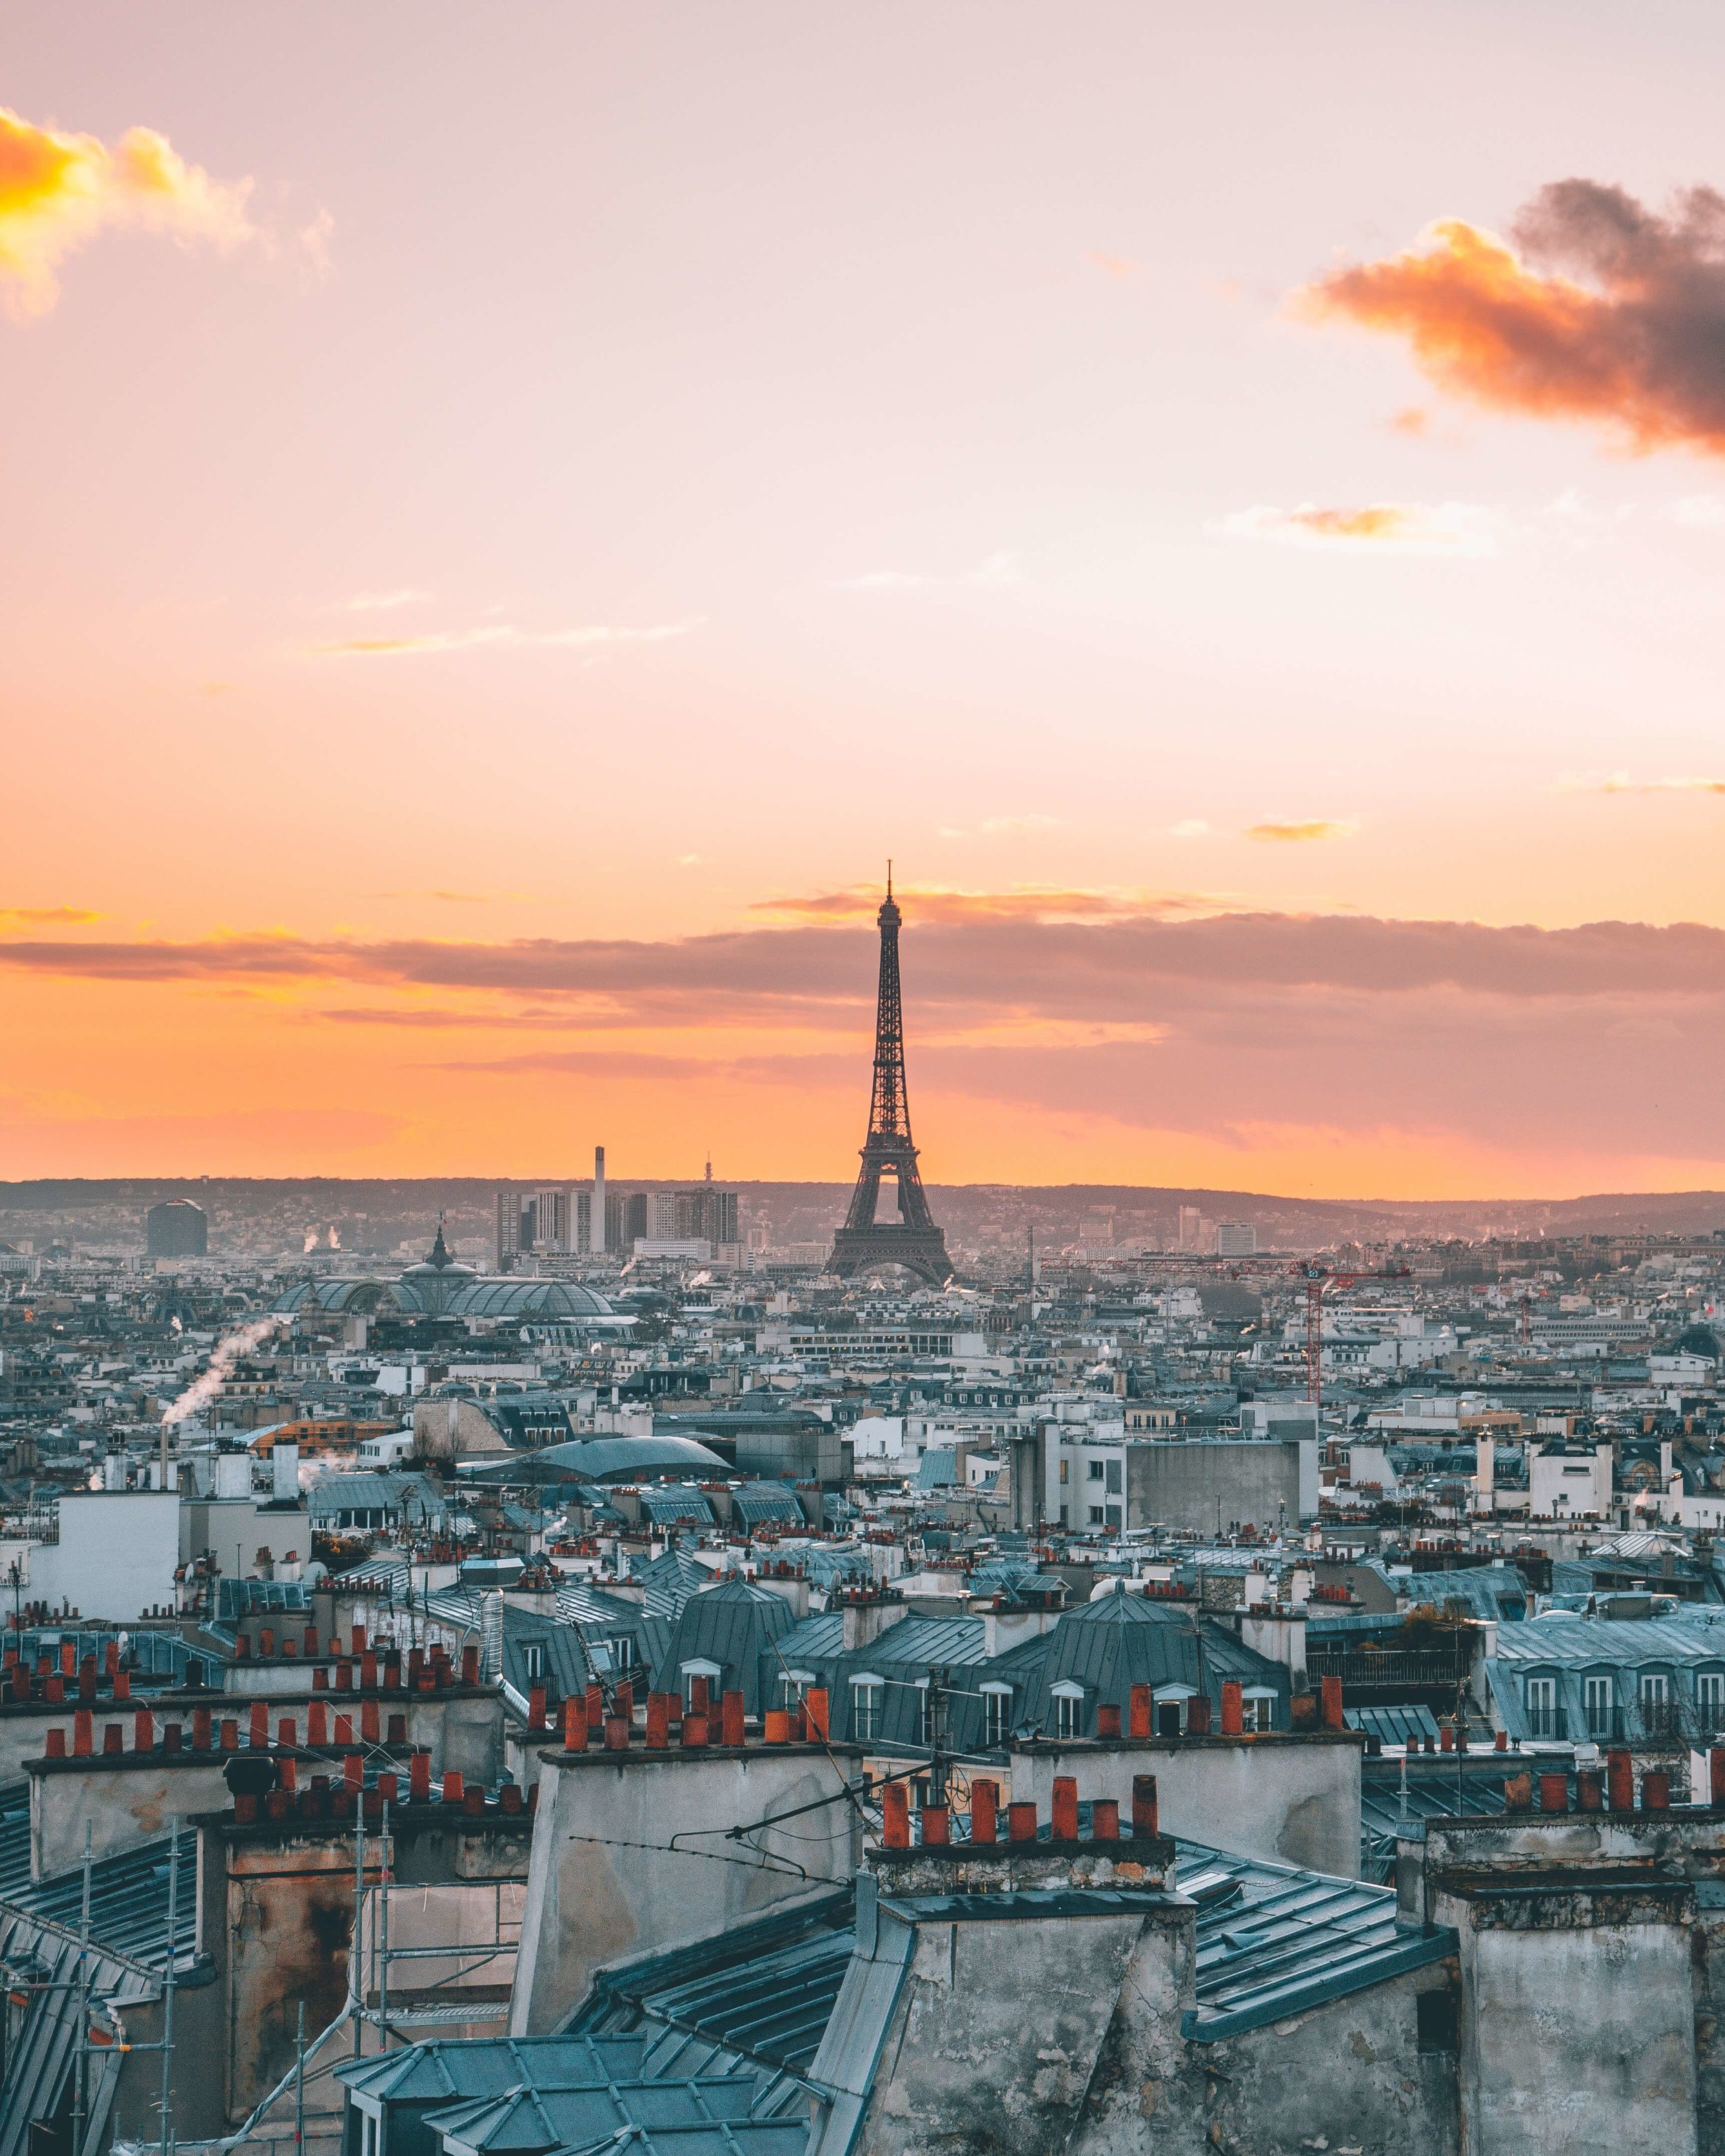 PARIS / DENMARK January 16TH-19TH 2020  '2020: BEST YEAR EVER' |  New Year's Celebration Mini Retreat, Delicious Food, Insider's Tours, Daily Inspiring talks and goal-setting exercises on how to create an amazing year for yourself!